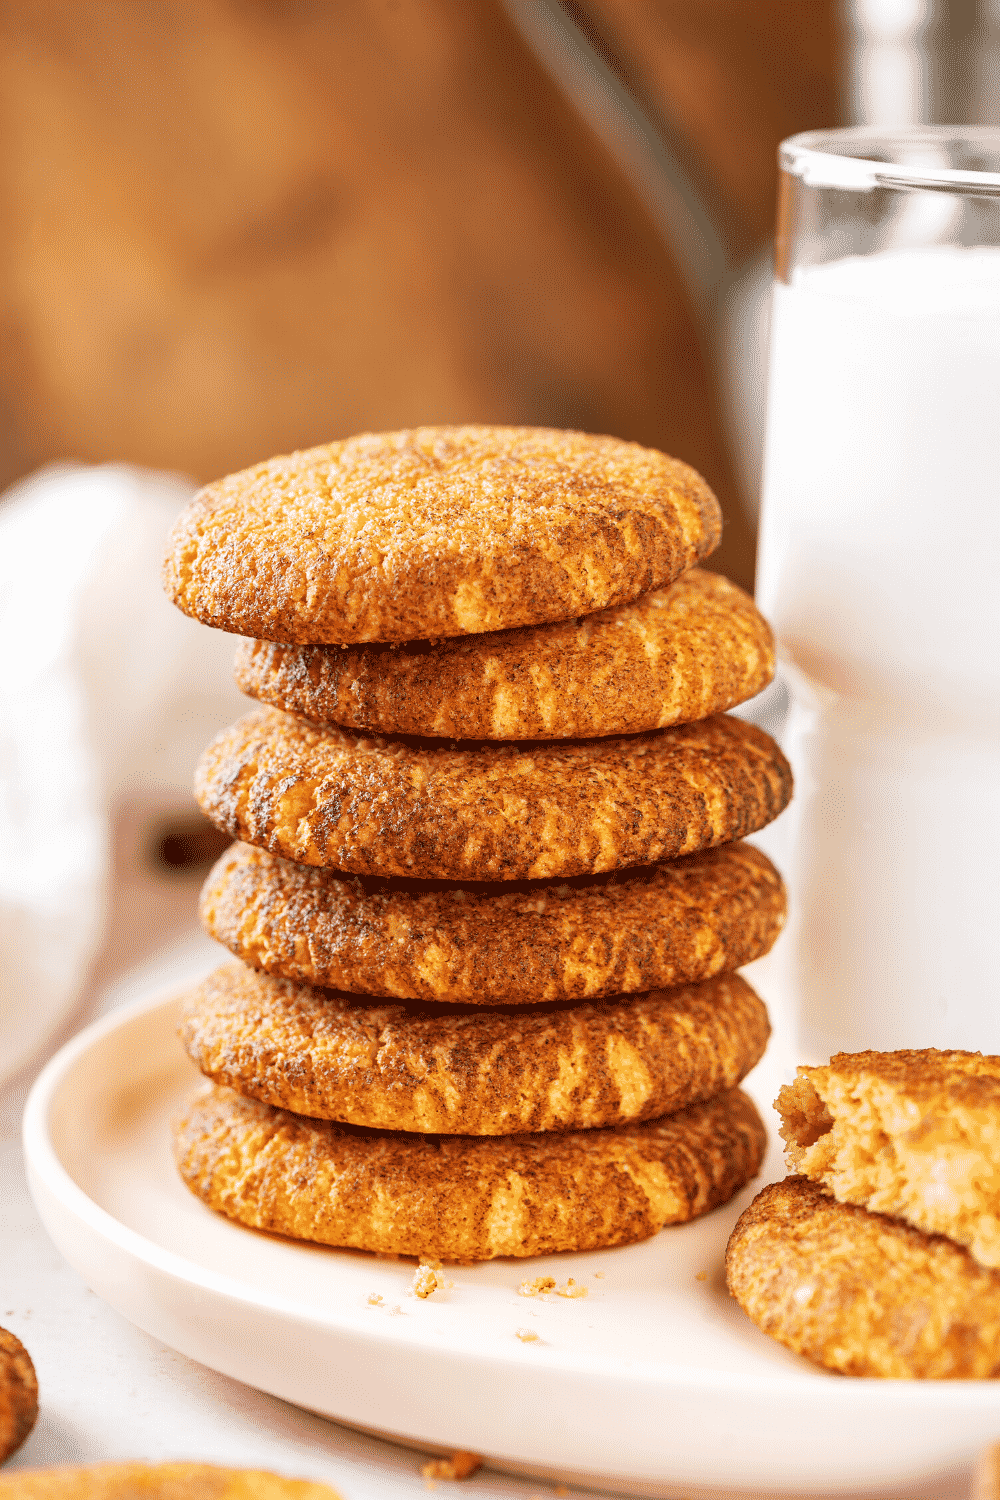 A stack of six snickerdoodle cookies on a white plate. A glass of milk is to the right of the stack.